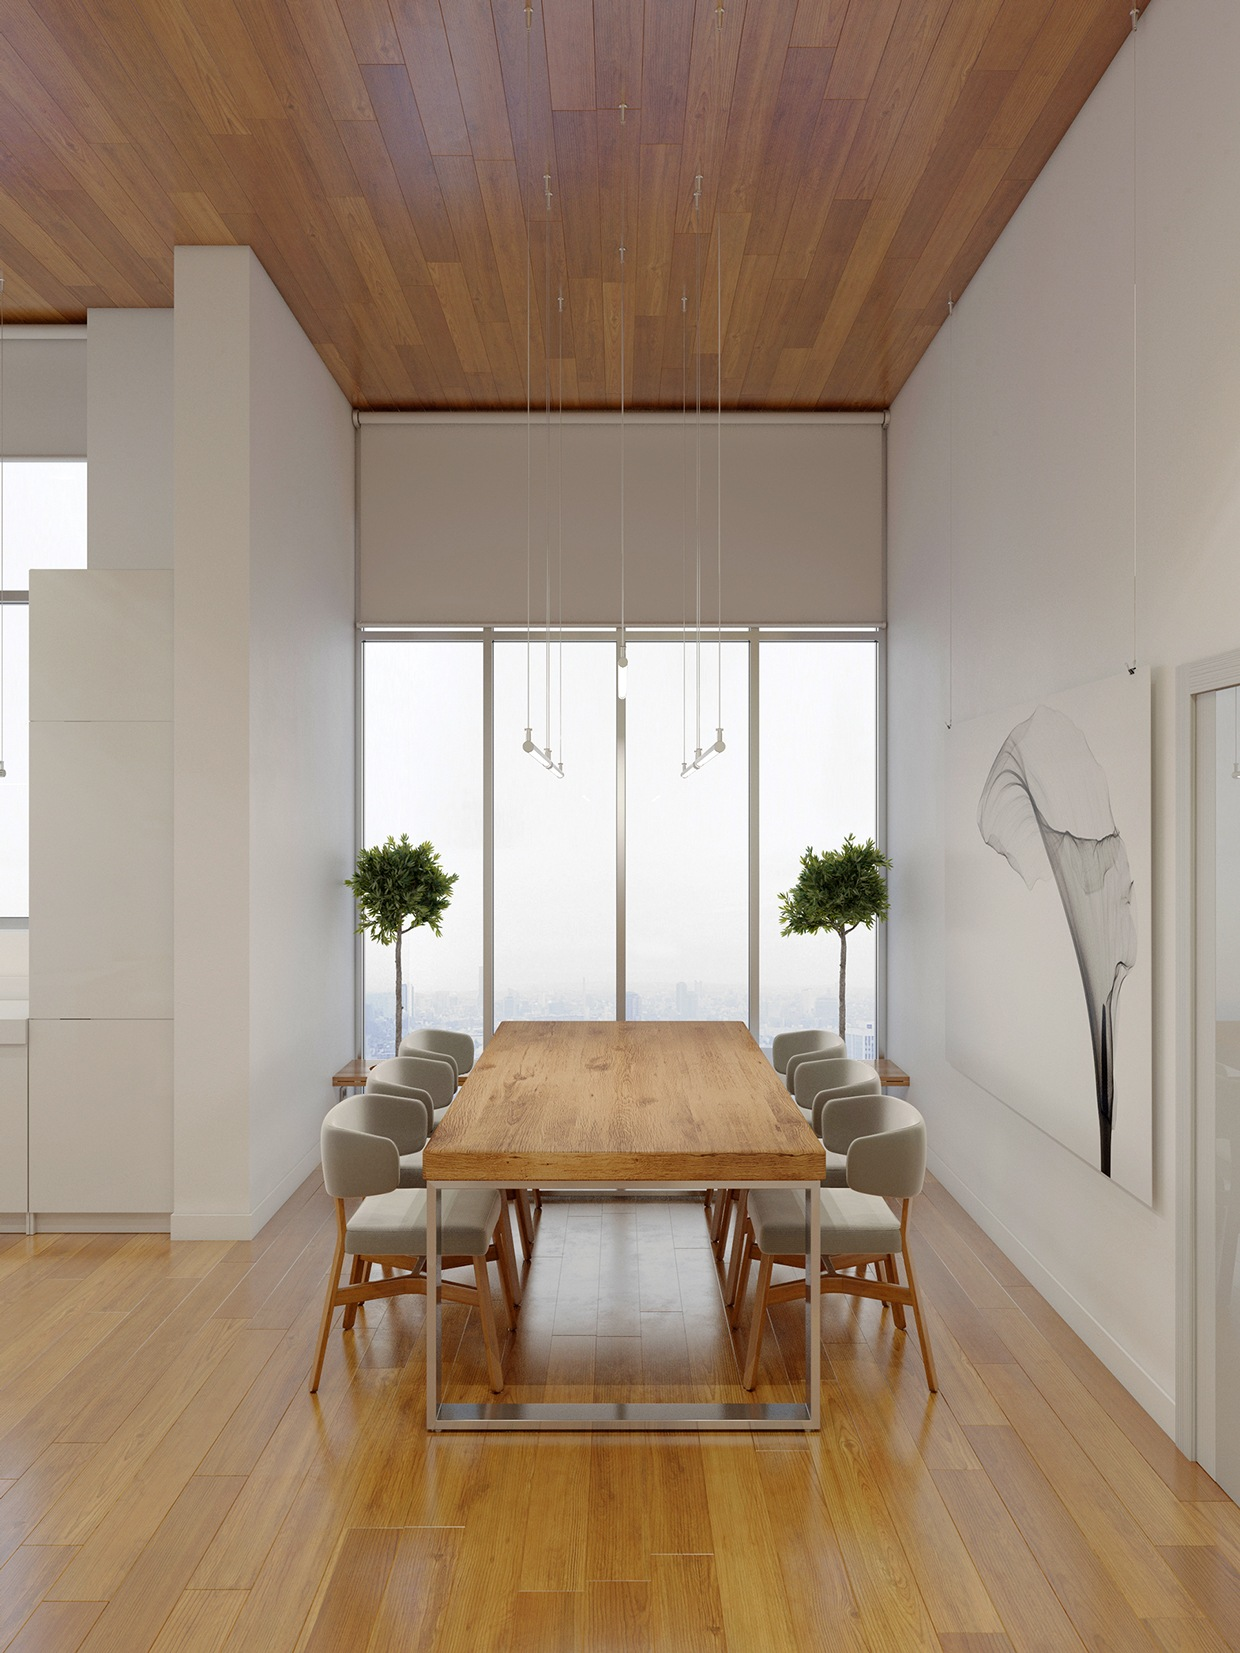 28 Simple Dining Room Ideas For A Stunning Inspiration: High Rise Apartment With Stunning Minimalist Interior